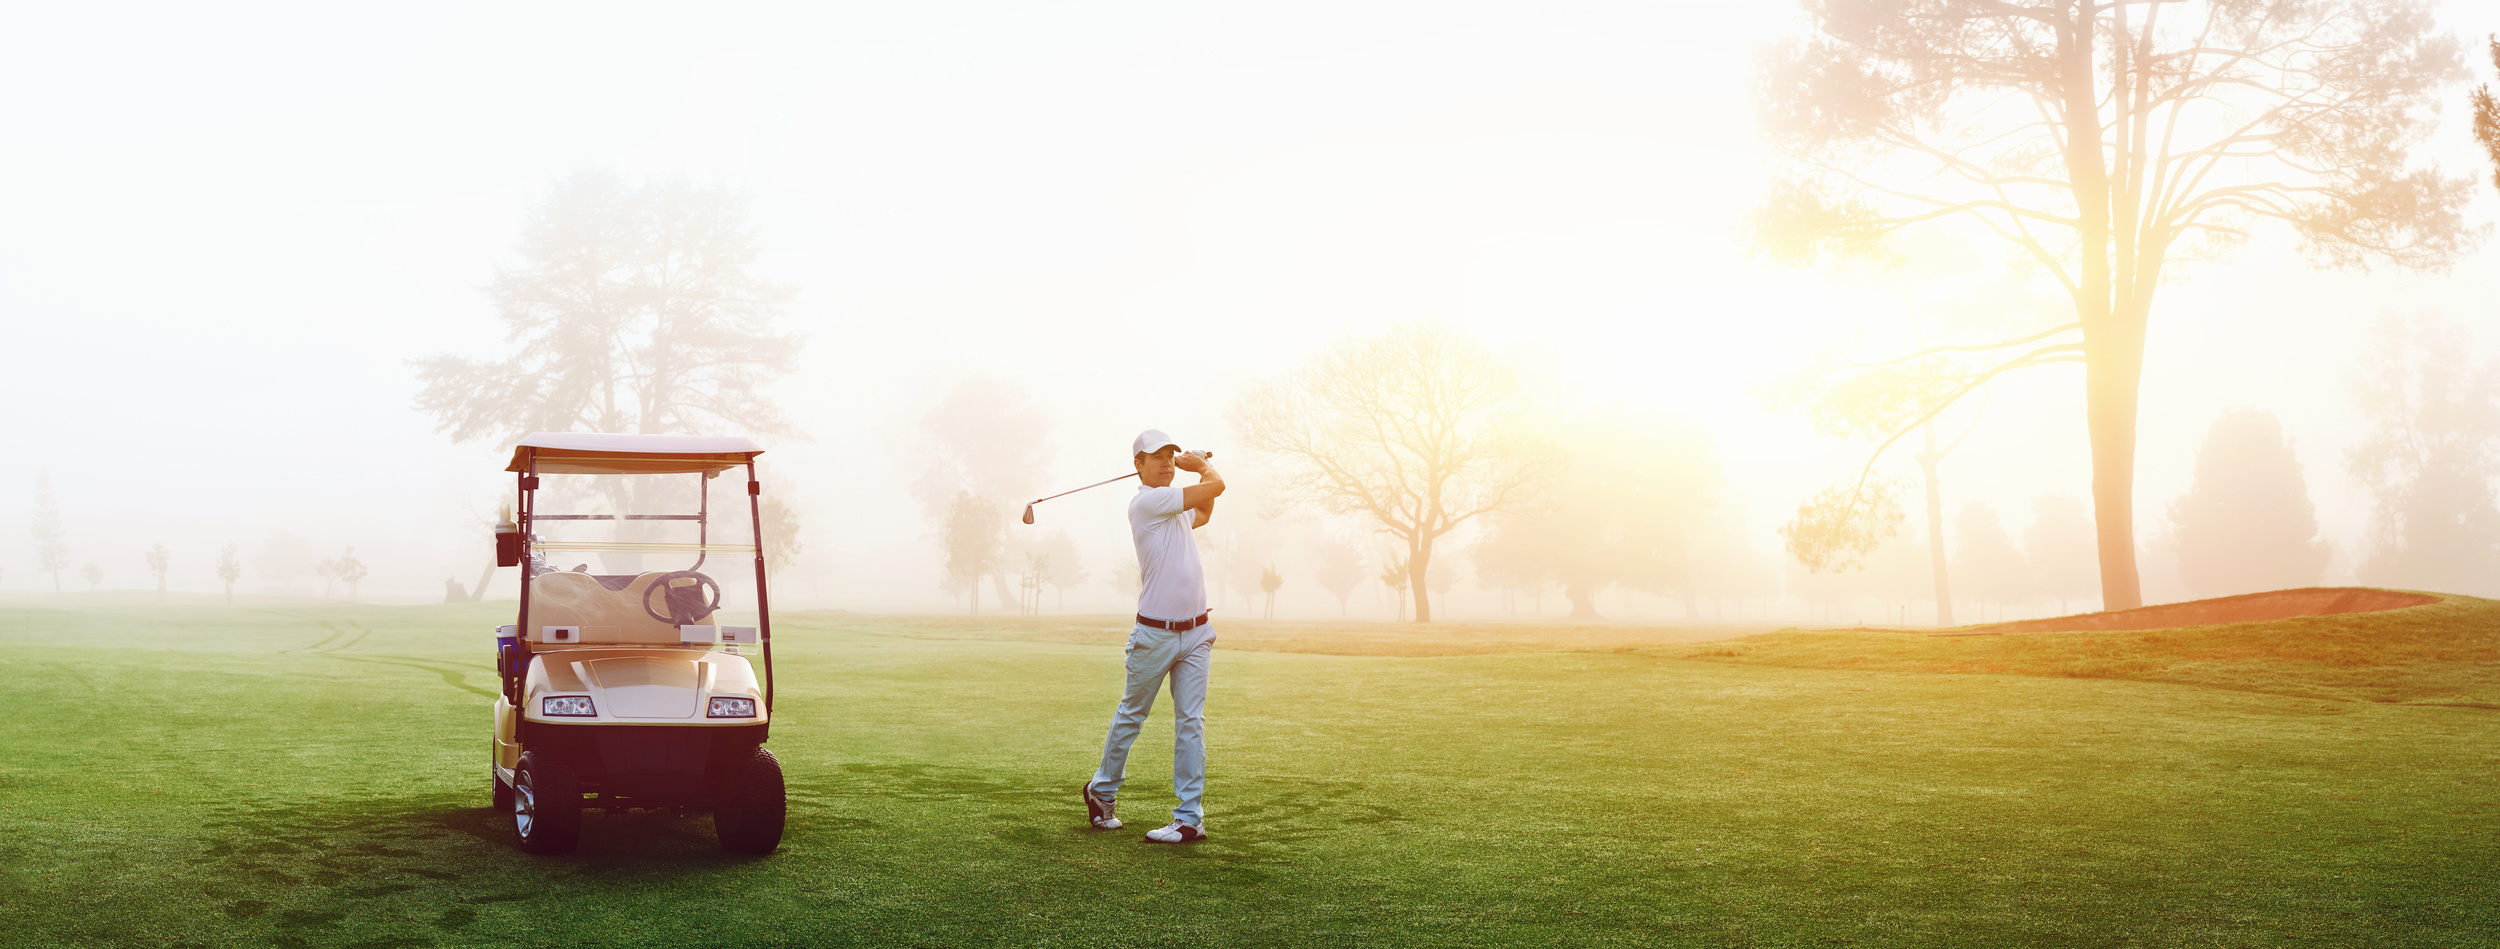 golfers elbow treatment in nashville - treating golfers elbow with cold laser therapy, kinesiotape, and chiropractic